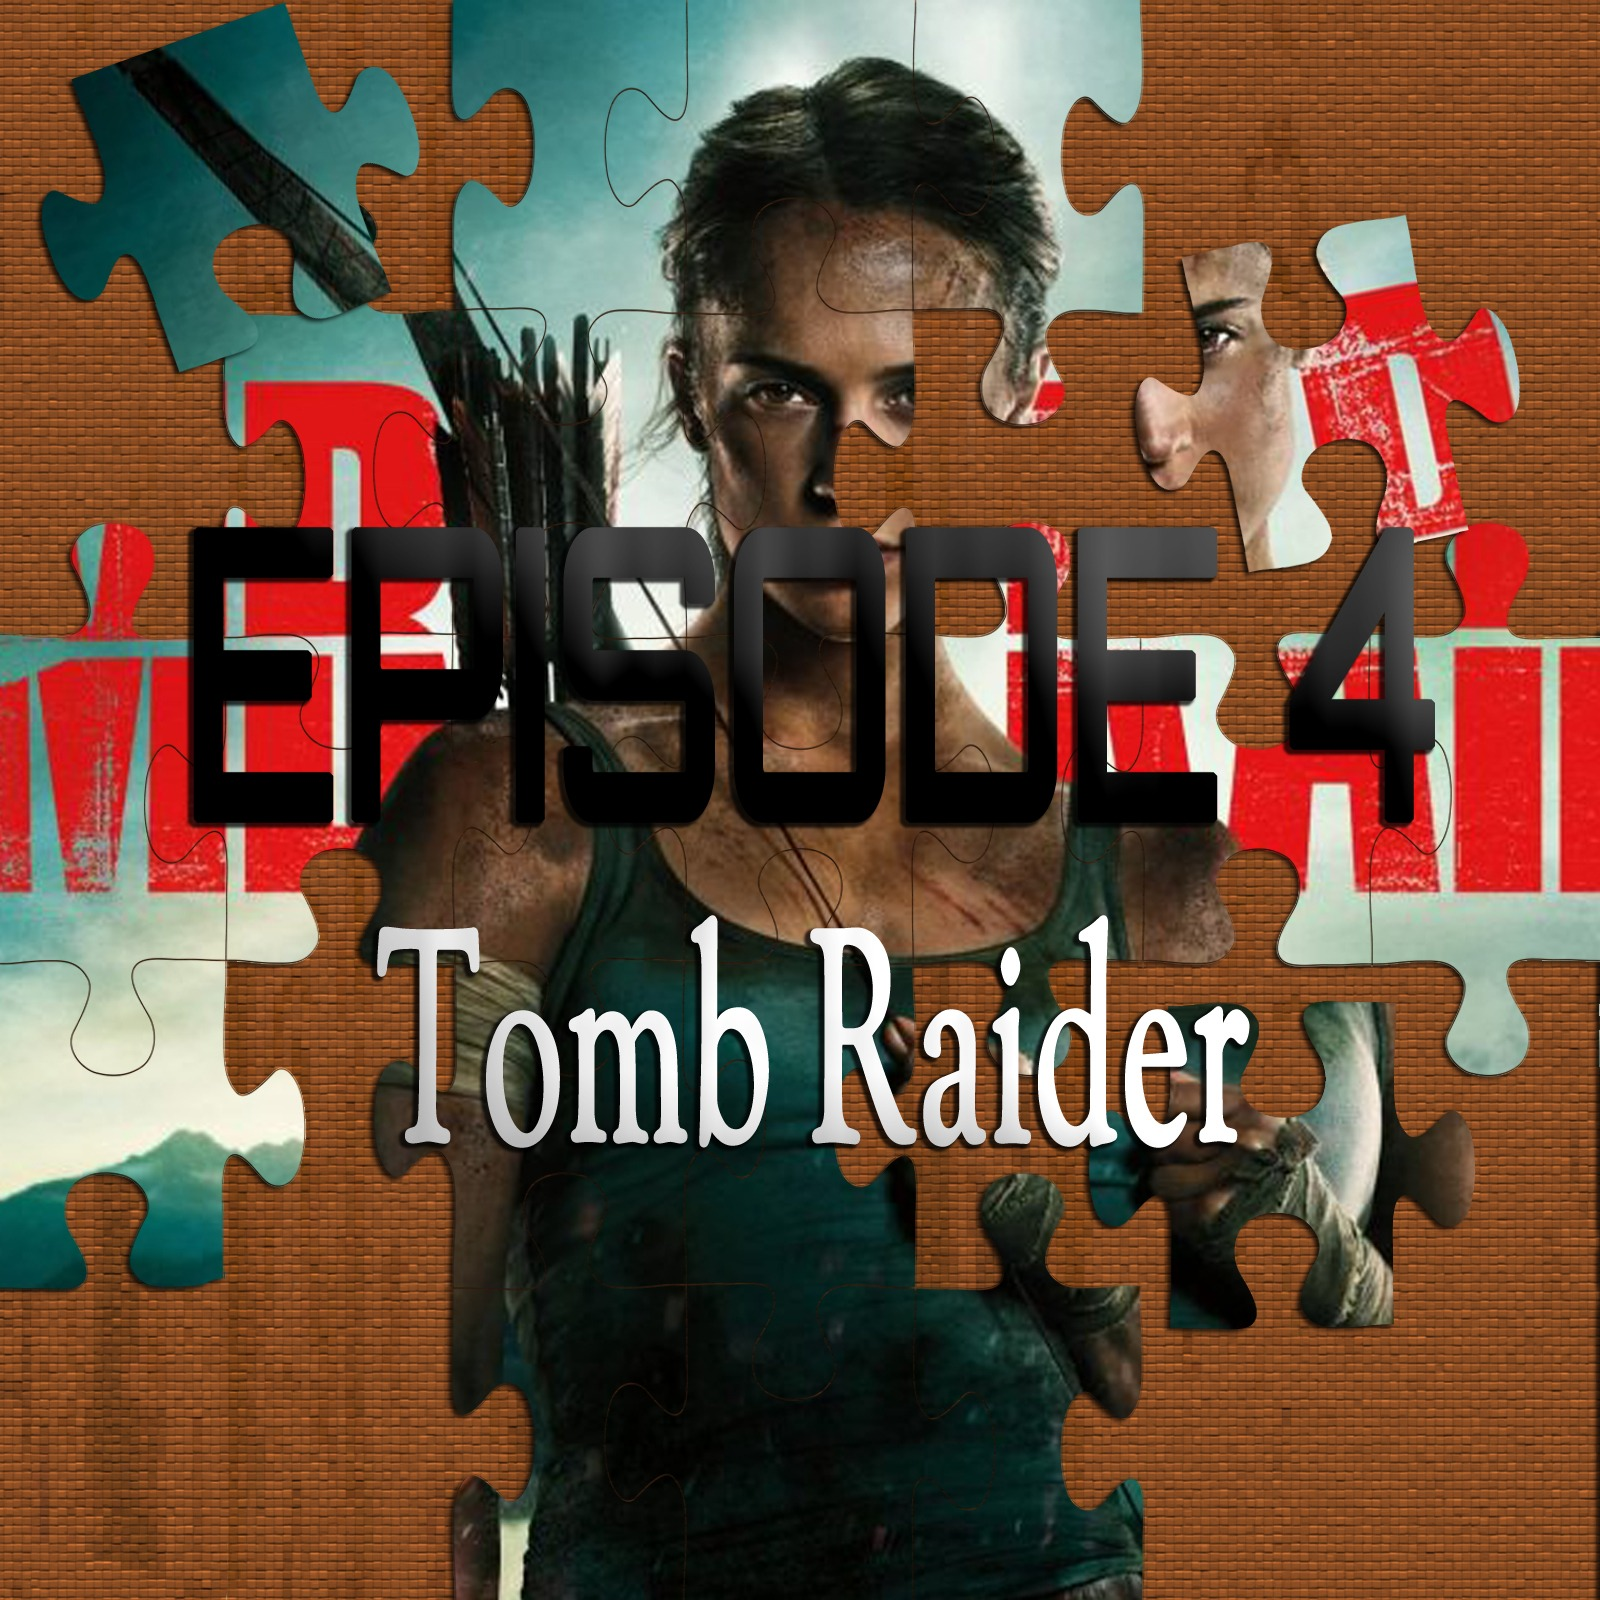 Tomb Raider (Featuring TJ Kross)